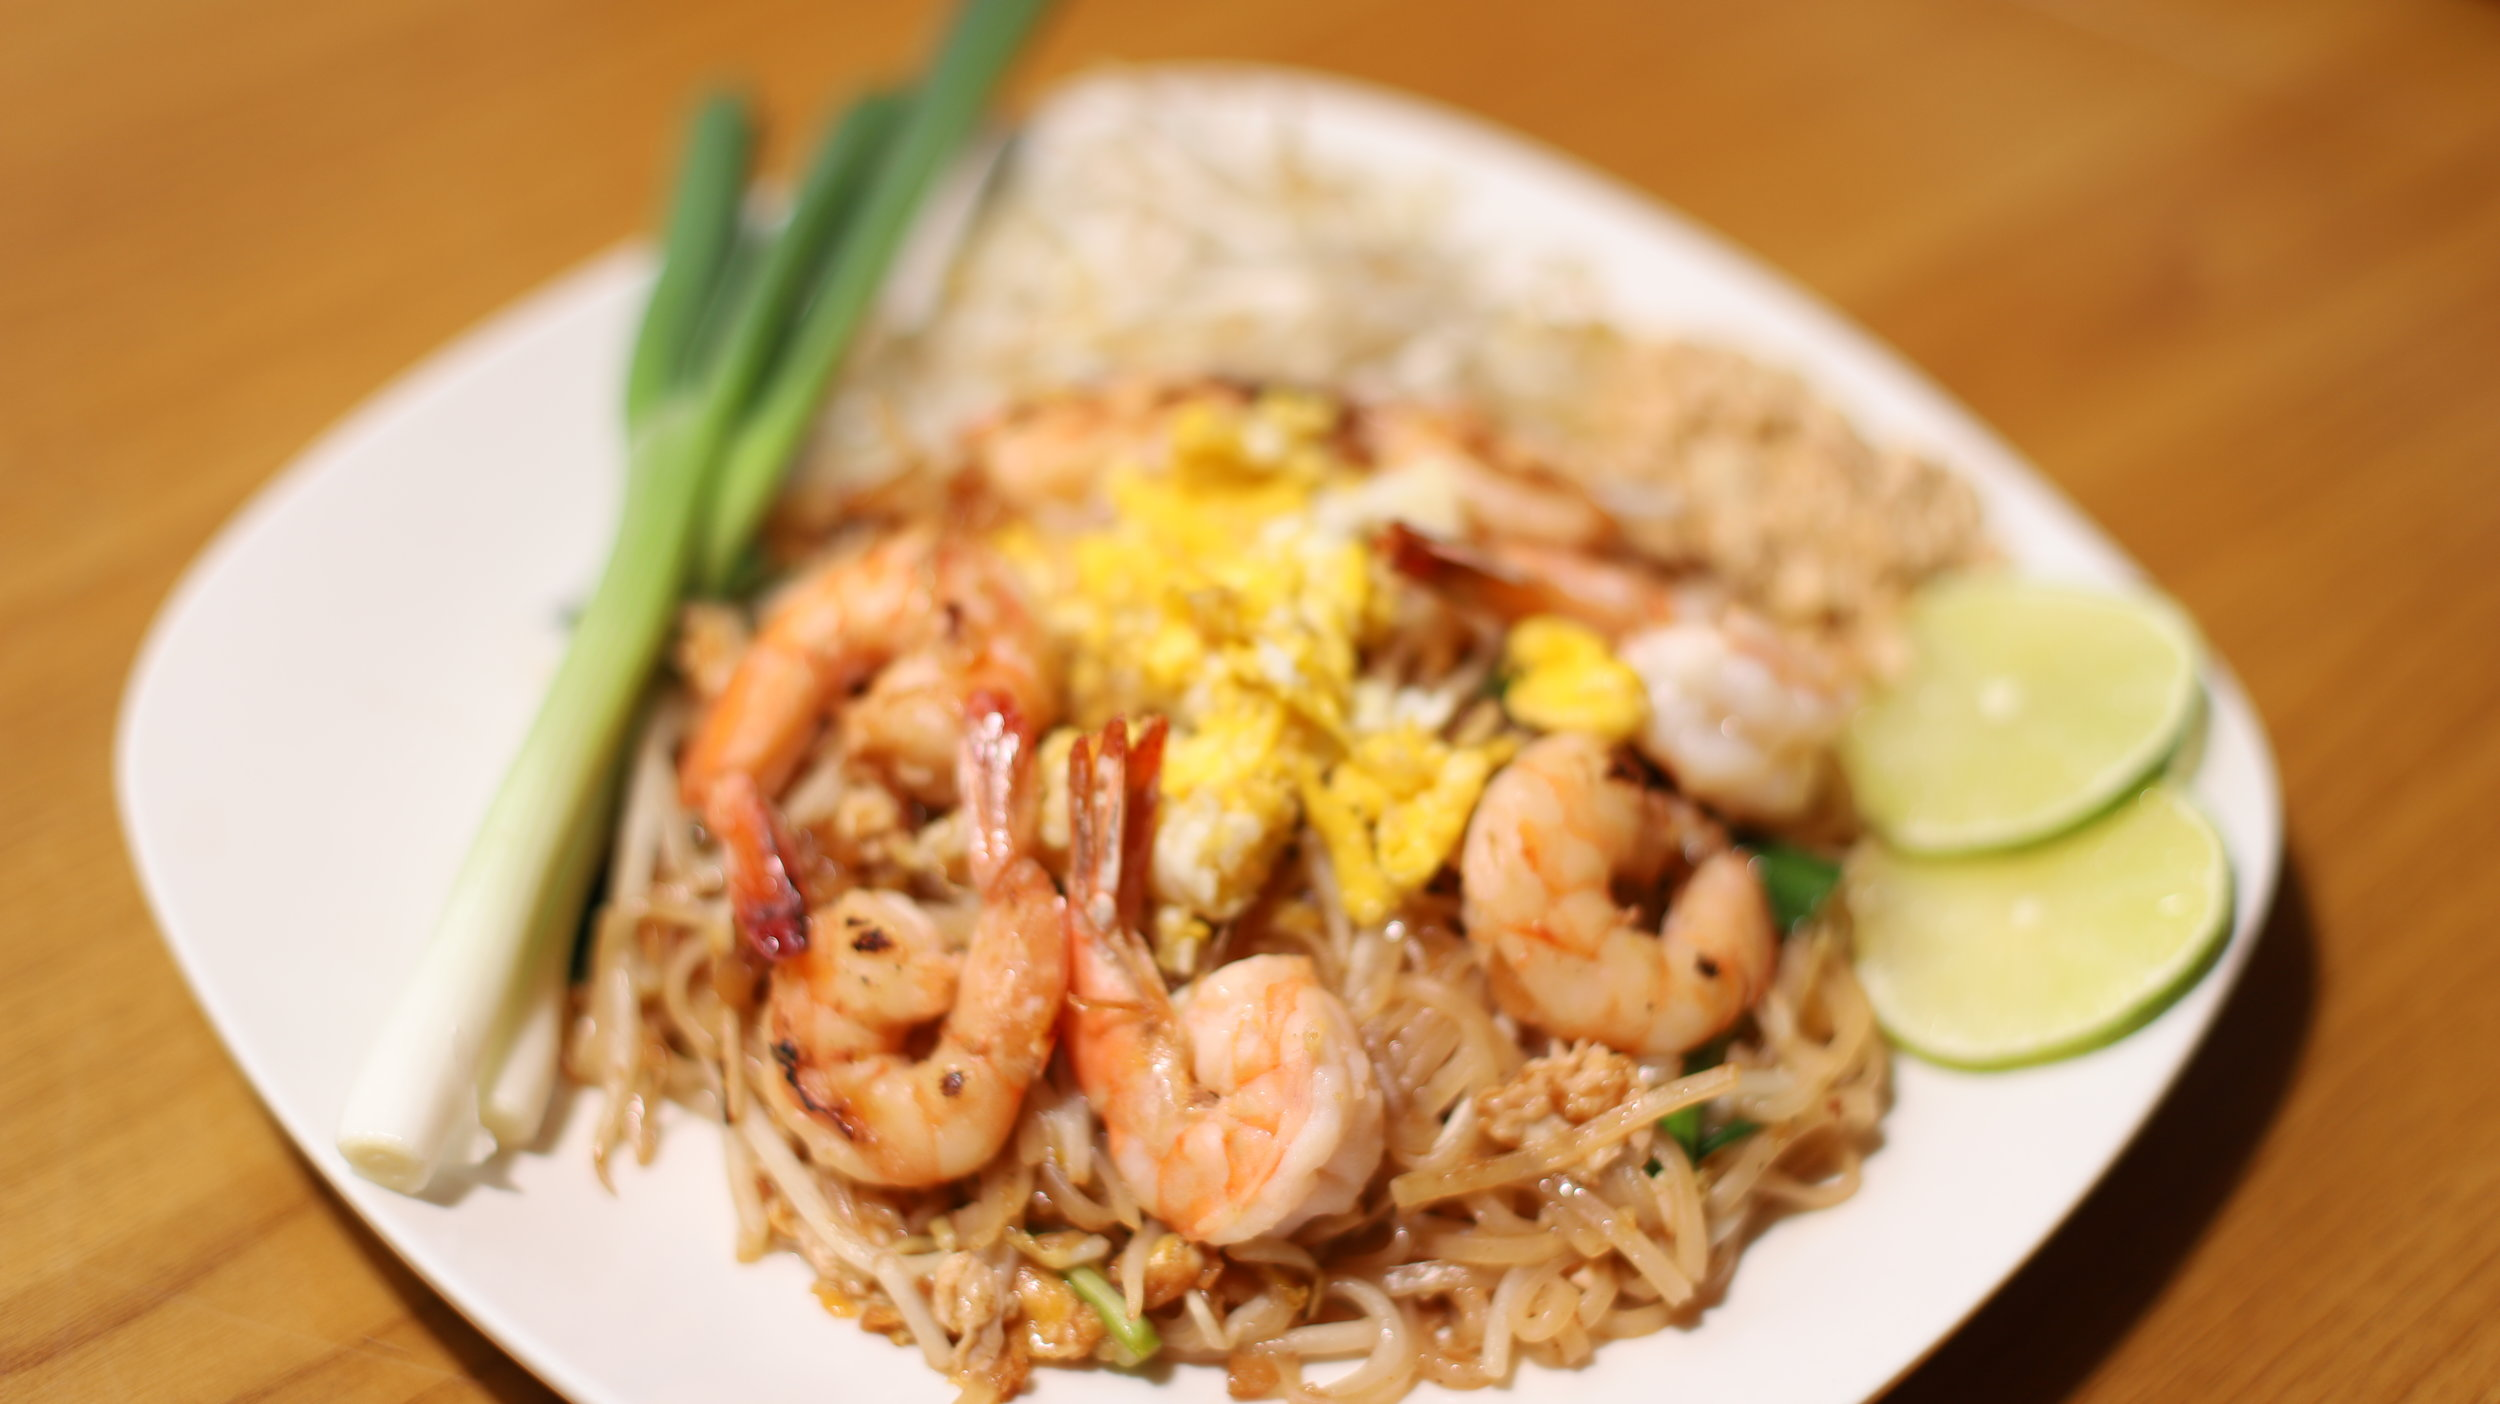 Dinner $11.95 - Choice Of Meat : Chicken / Beef/ Pork /Tofu / Vegetables : Shrimp 13.95$/Seafood 15.95$